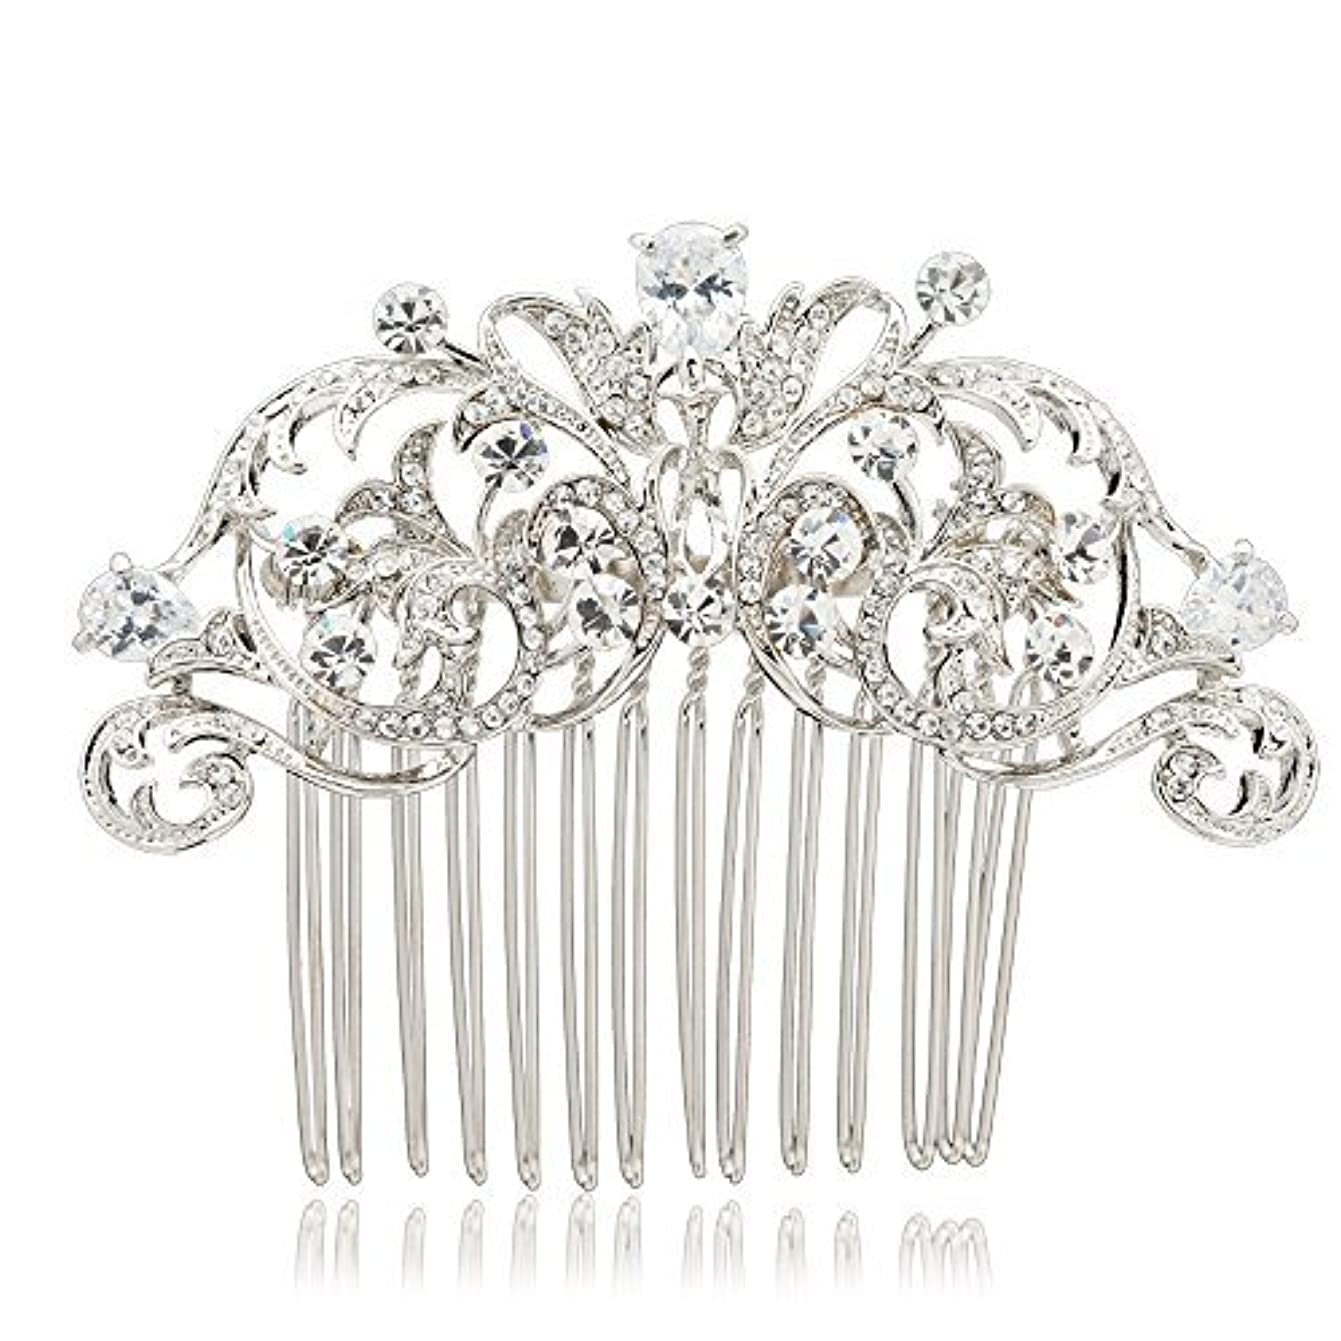 SEPBRIDALS Crystal Rhinestone Hair Side Comb Pins Bridal Wedding Women Hair Accessories Jewelry 2253R [並行輸入品]